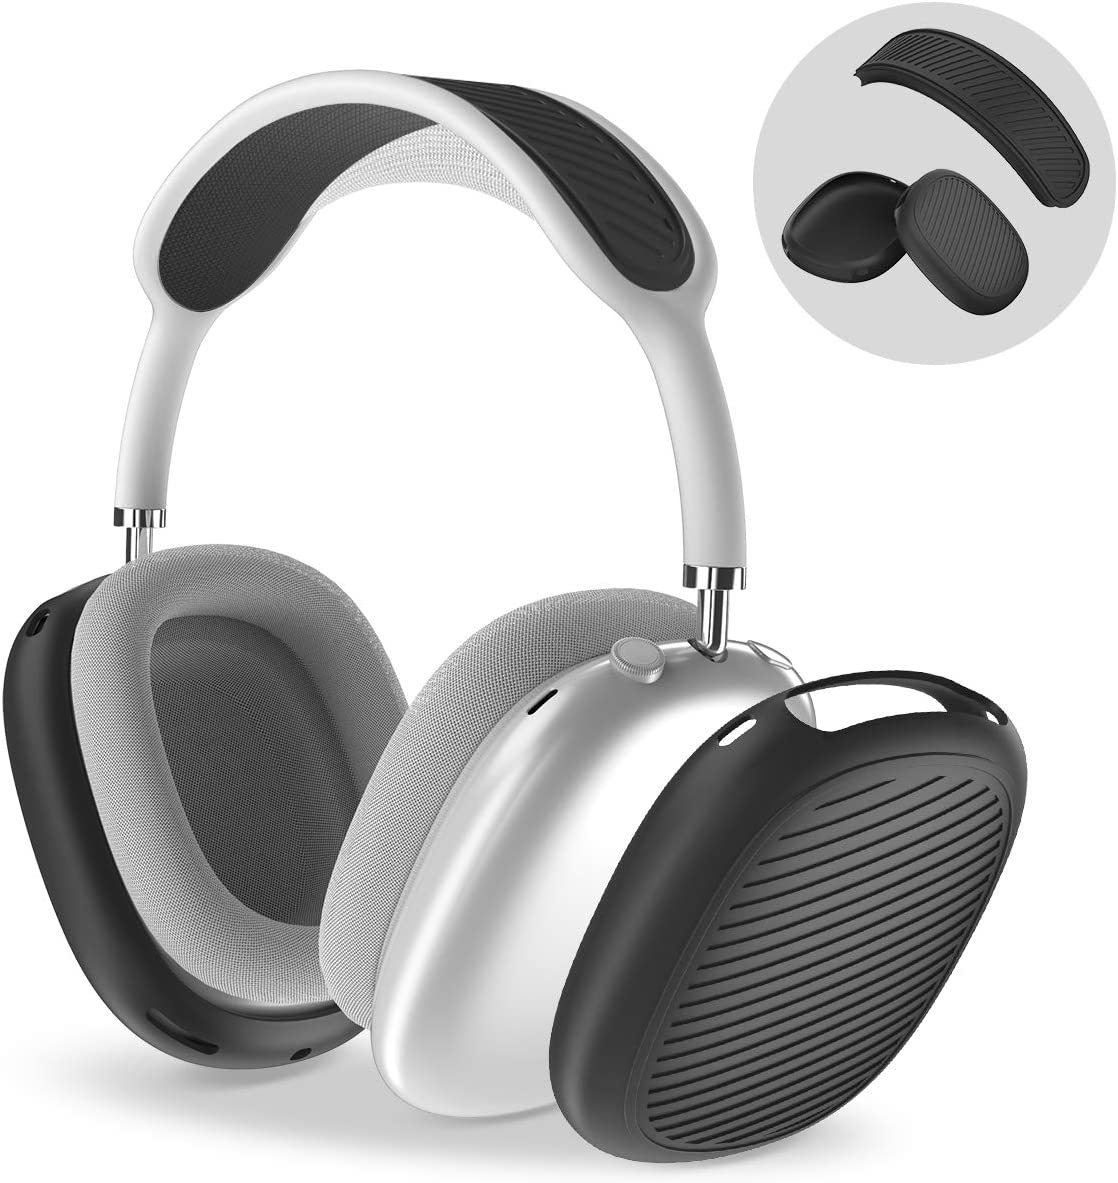 [2 Sets] Case for AirPods Max Ear Cups Cover & Headband Cover, Soft Silicone Anti-Scratch/Dust-Proof Earphone Earpad Cover & Headband Cushion for Apple AirPods Max - Airpods Max Accessories (Black)